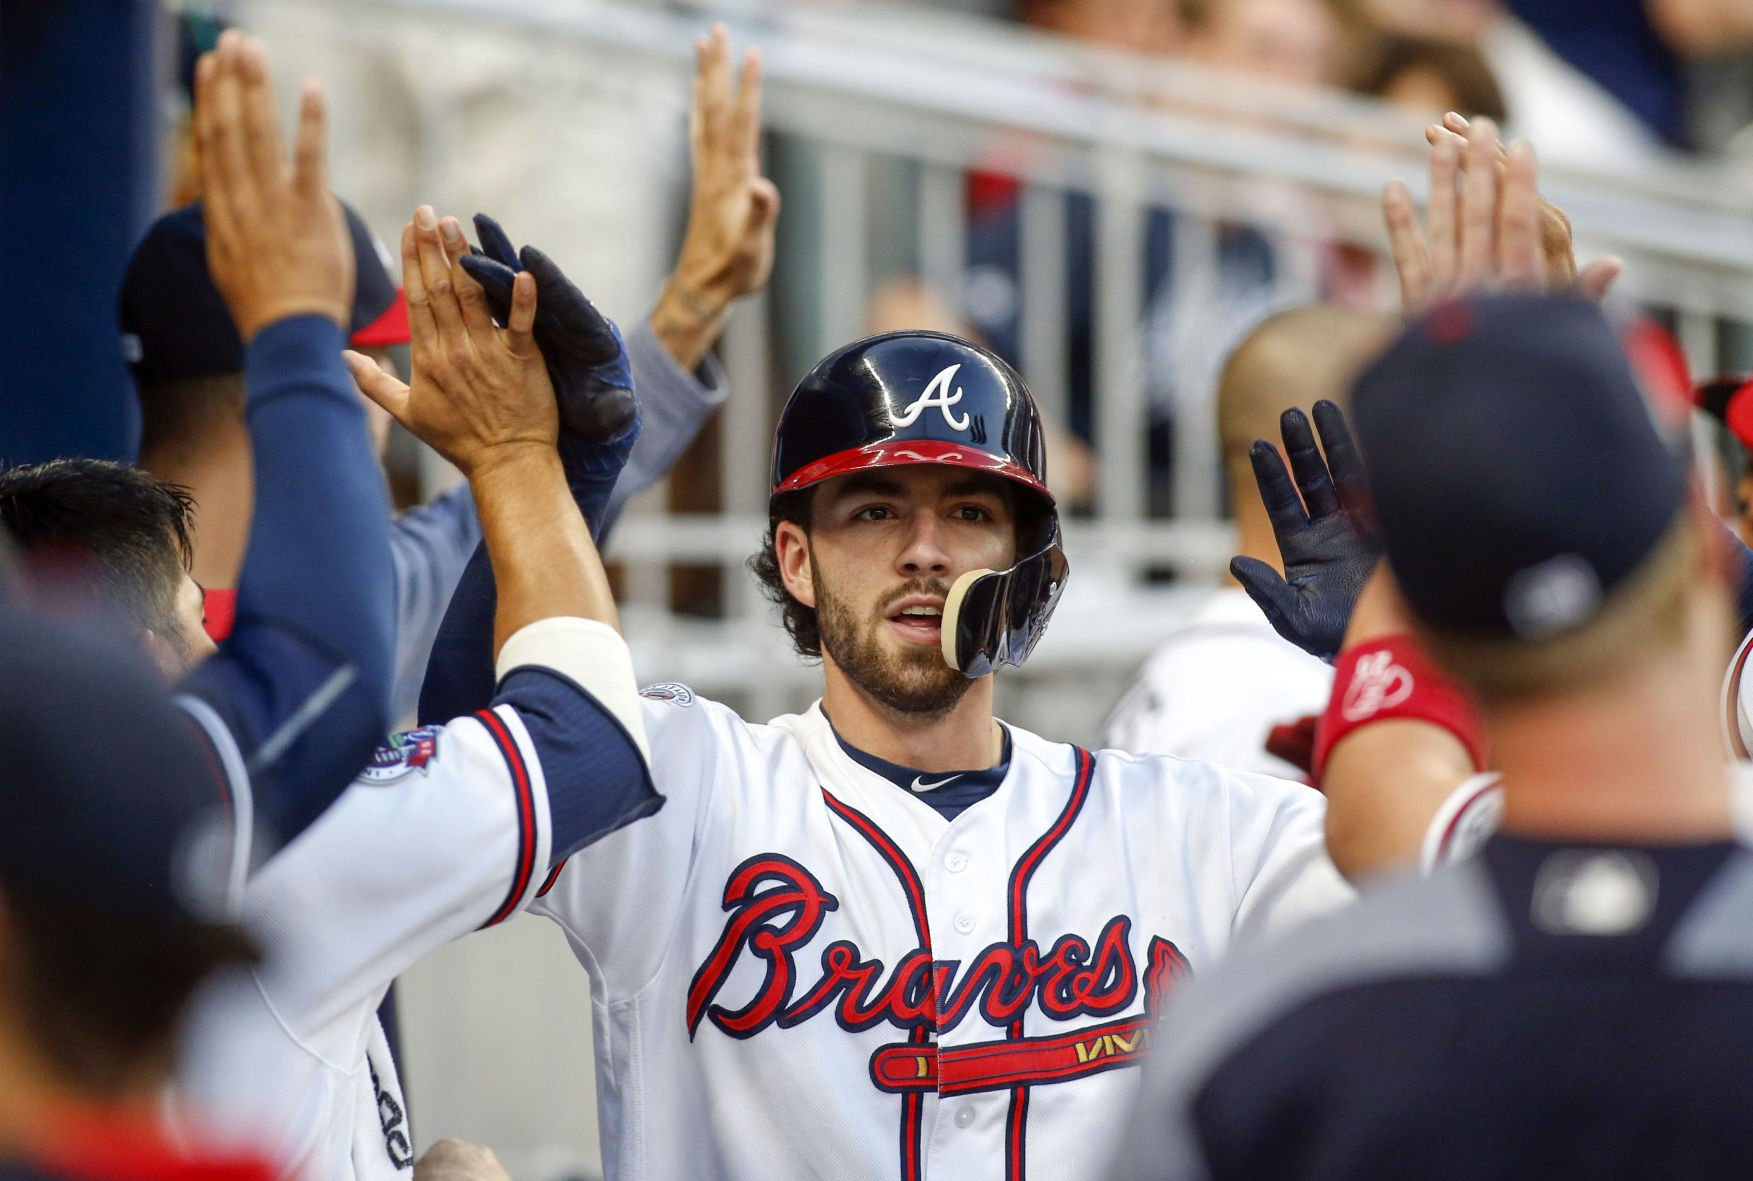 Braves send Dansby Swanson back to Triple-A Gwinnett